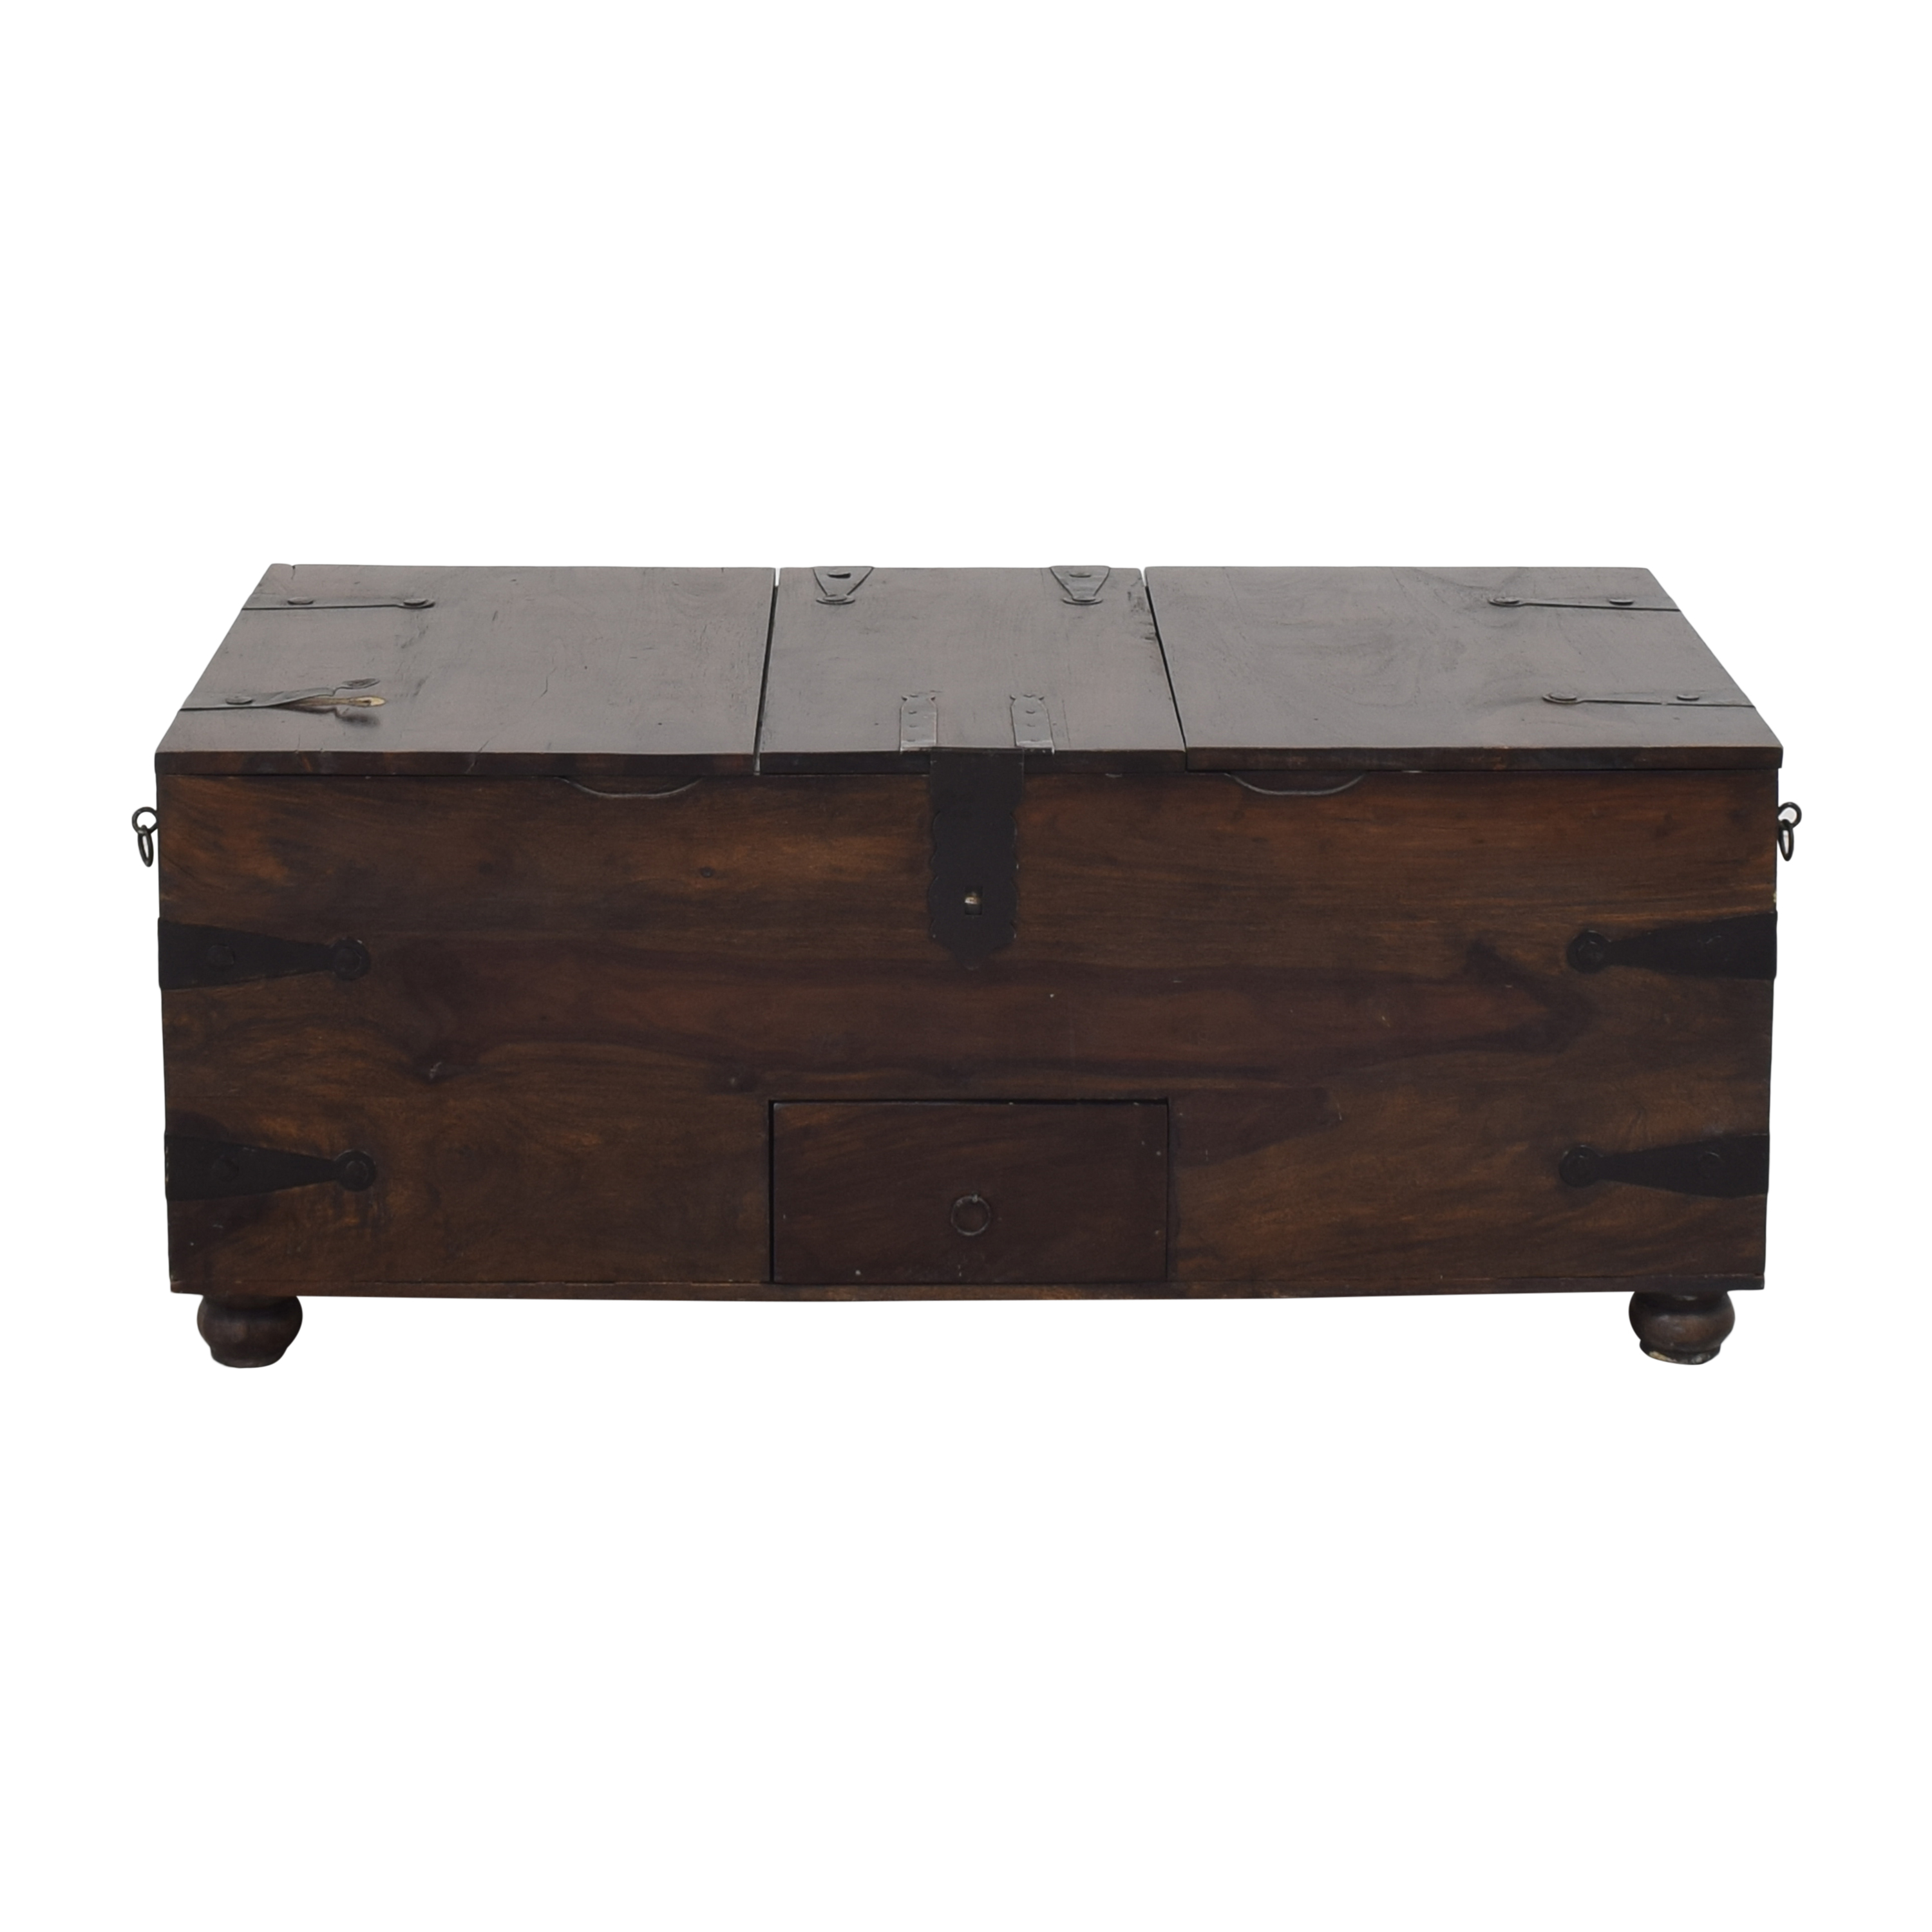 shop Crate & Barrel Crate & Barrel Taka Trunk Coffee Table online